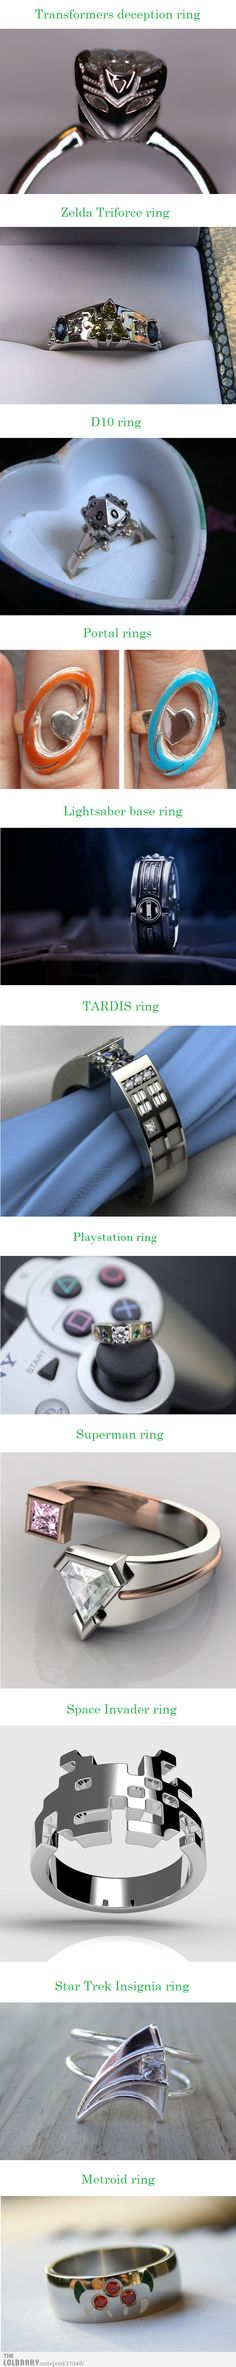 Nerds Forever... I love the play station one!